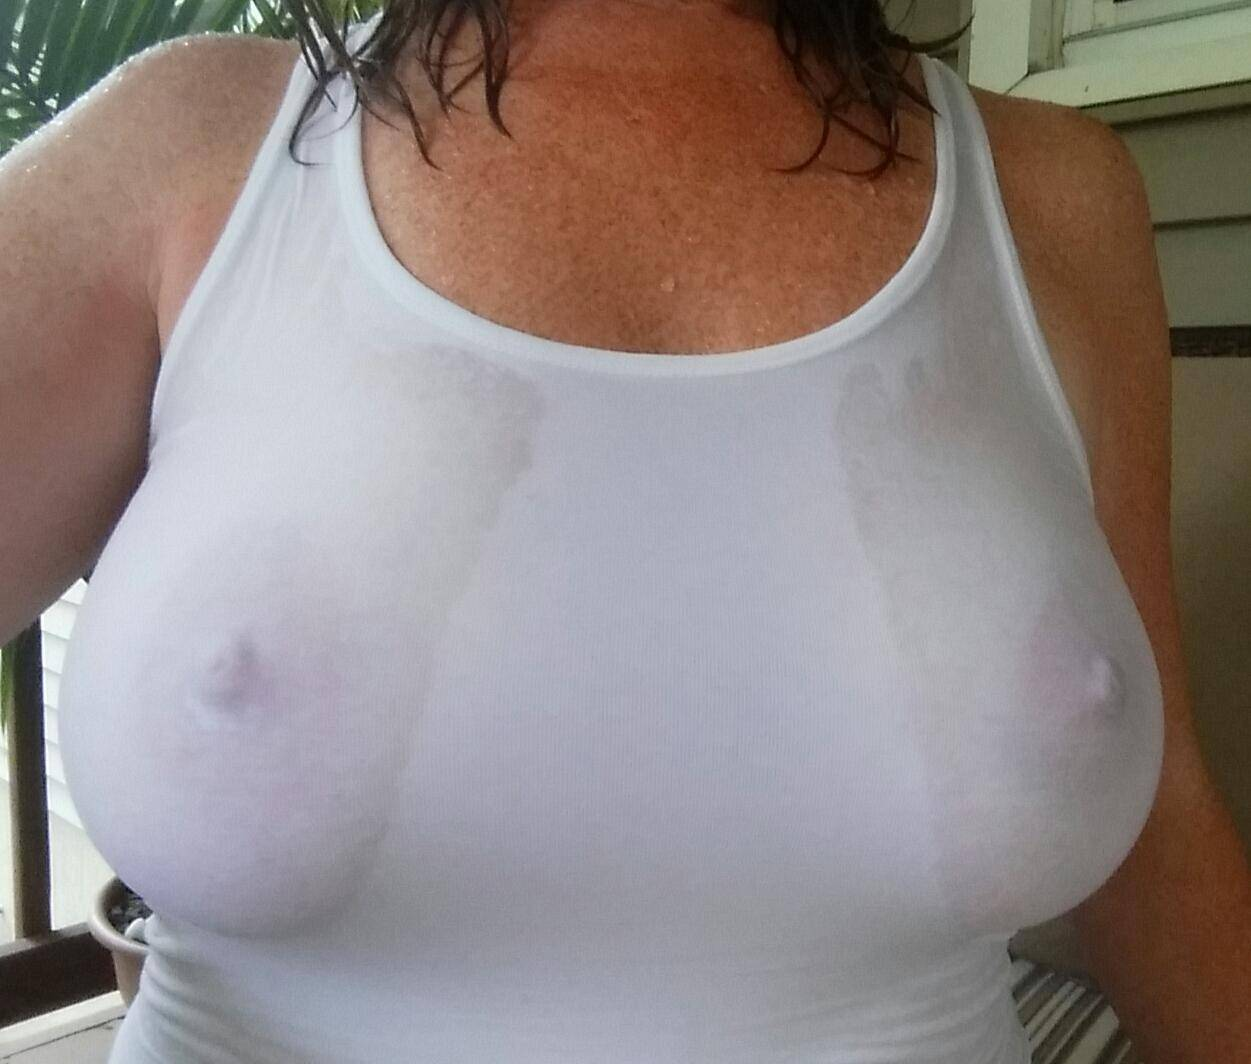 Hot summer time wet t shirt visible MILF nipples real nudity milf pics boobs flash